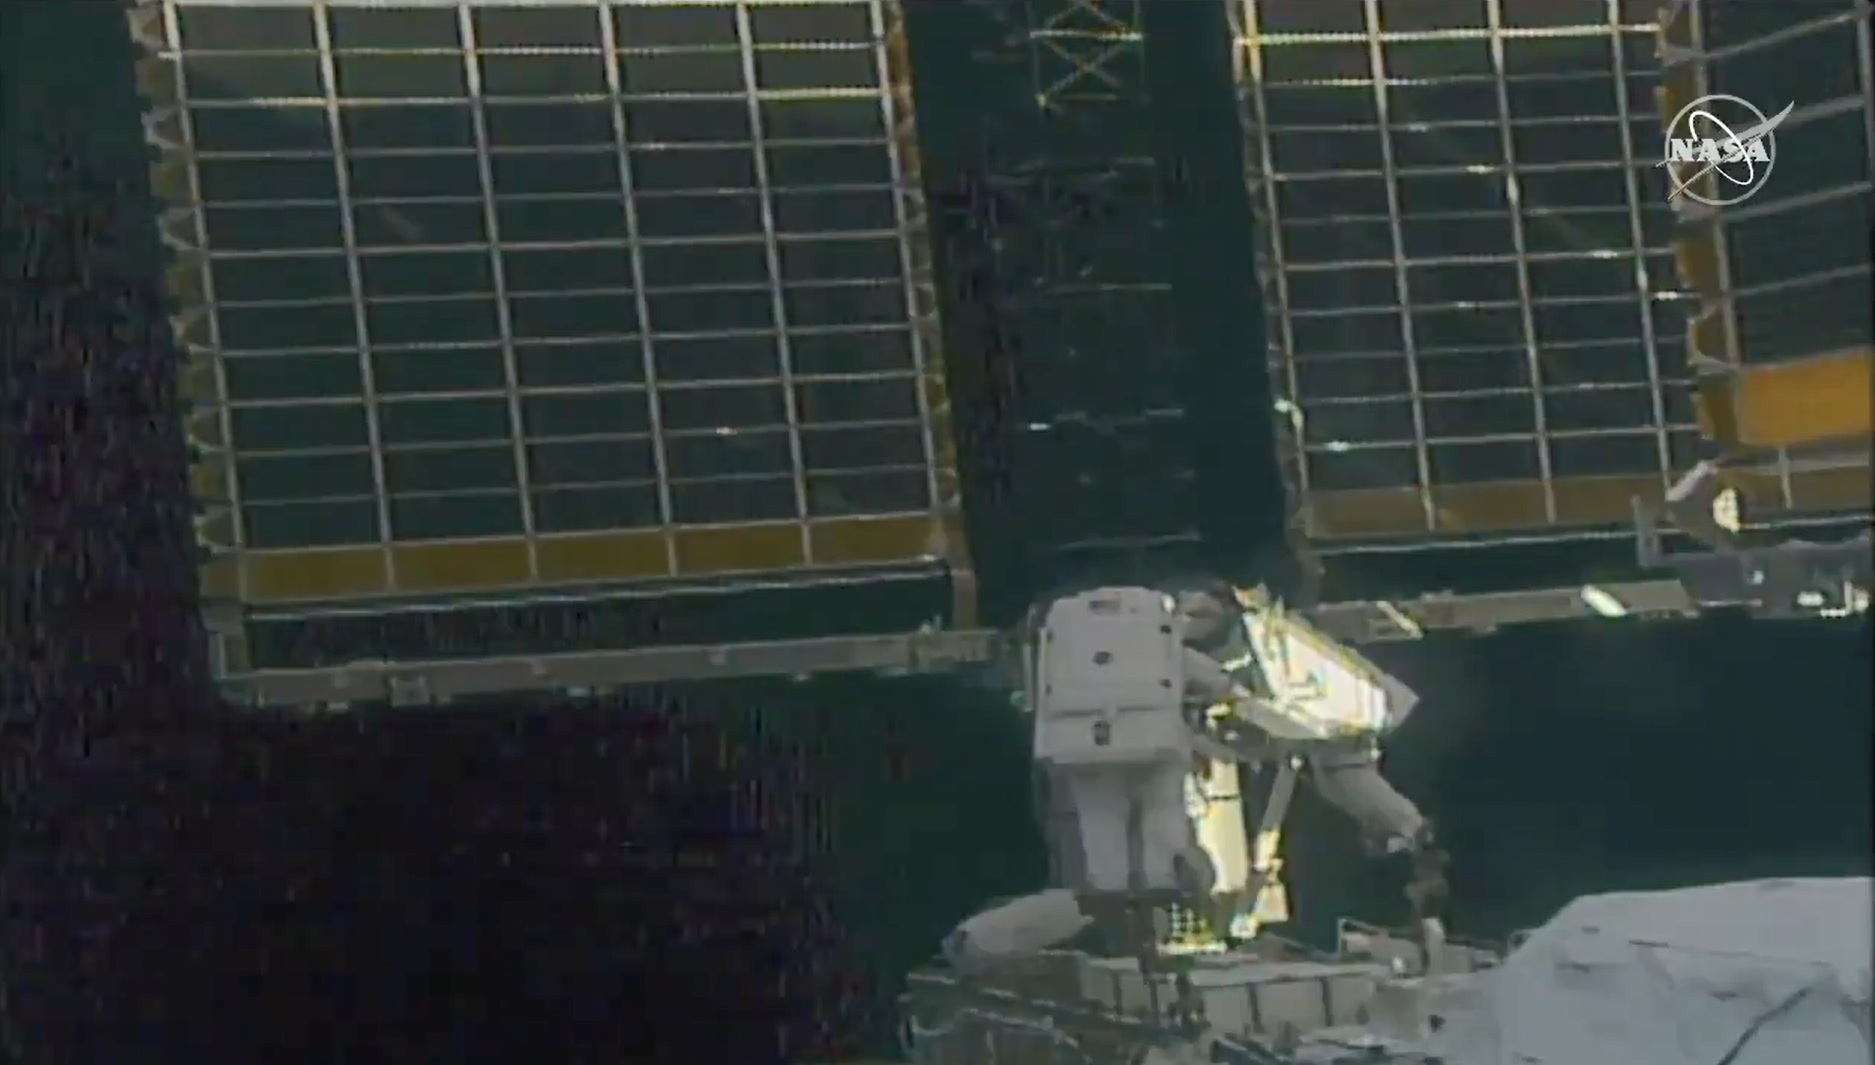 Spacewalkers Shane Kimbrough and Thomas Pesquet working at the Port-6 truss during EVA 74. Credit: NASA TV